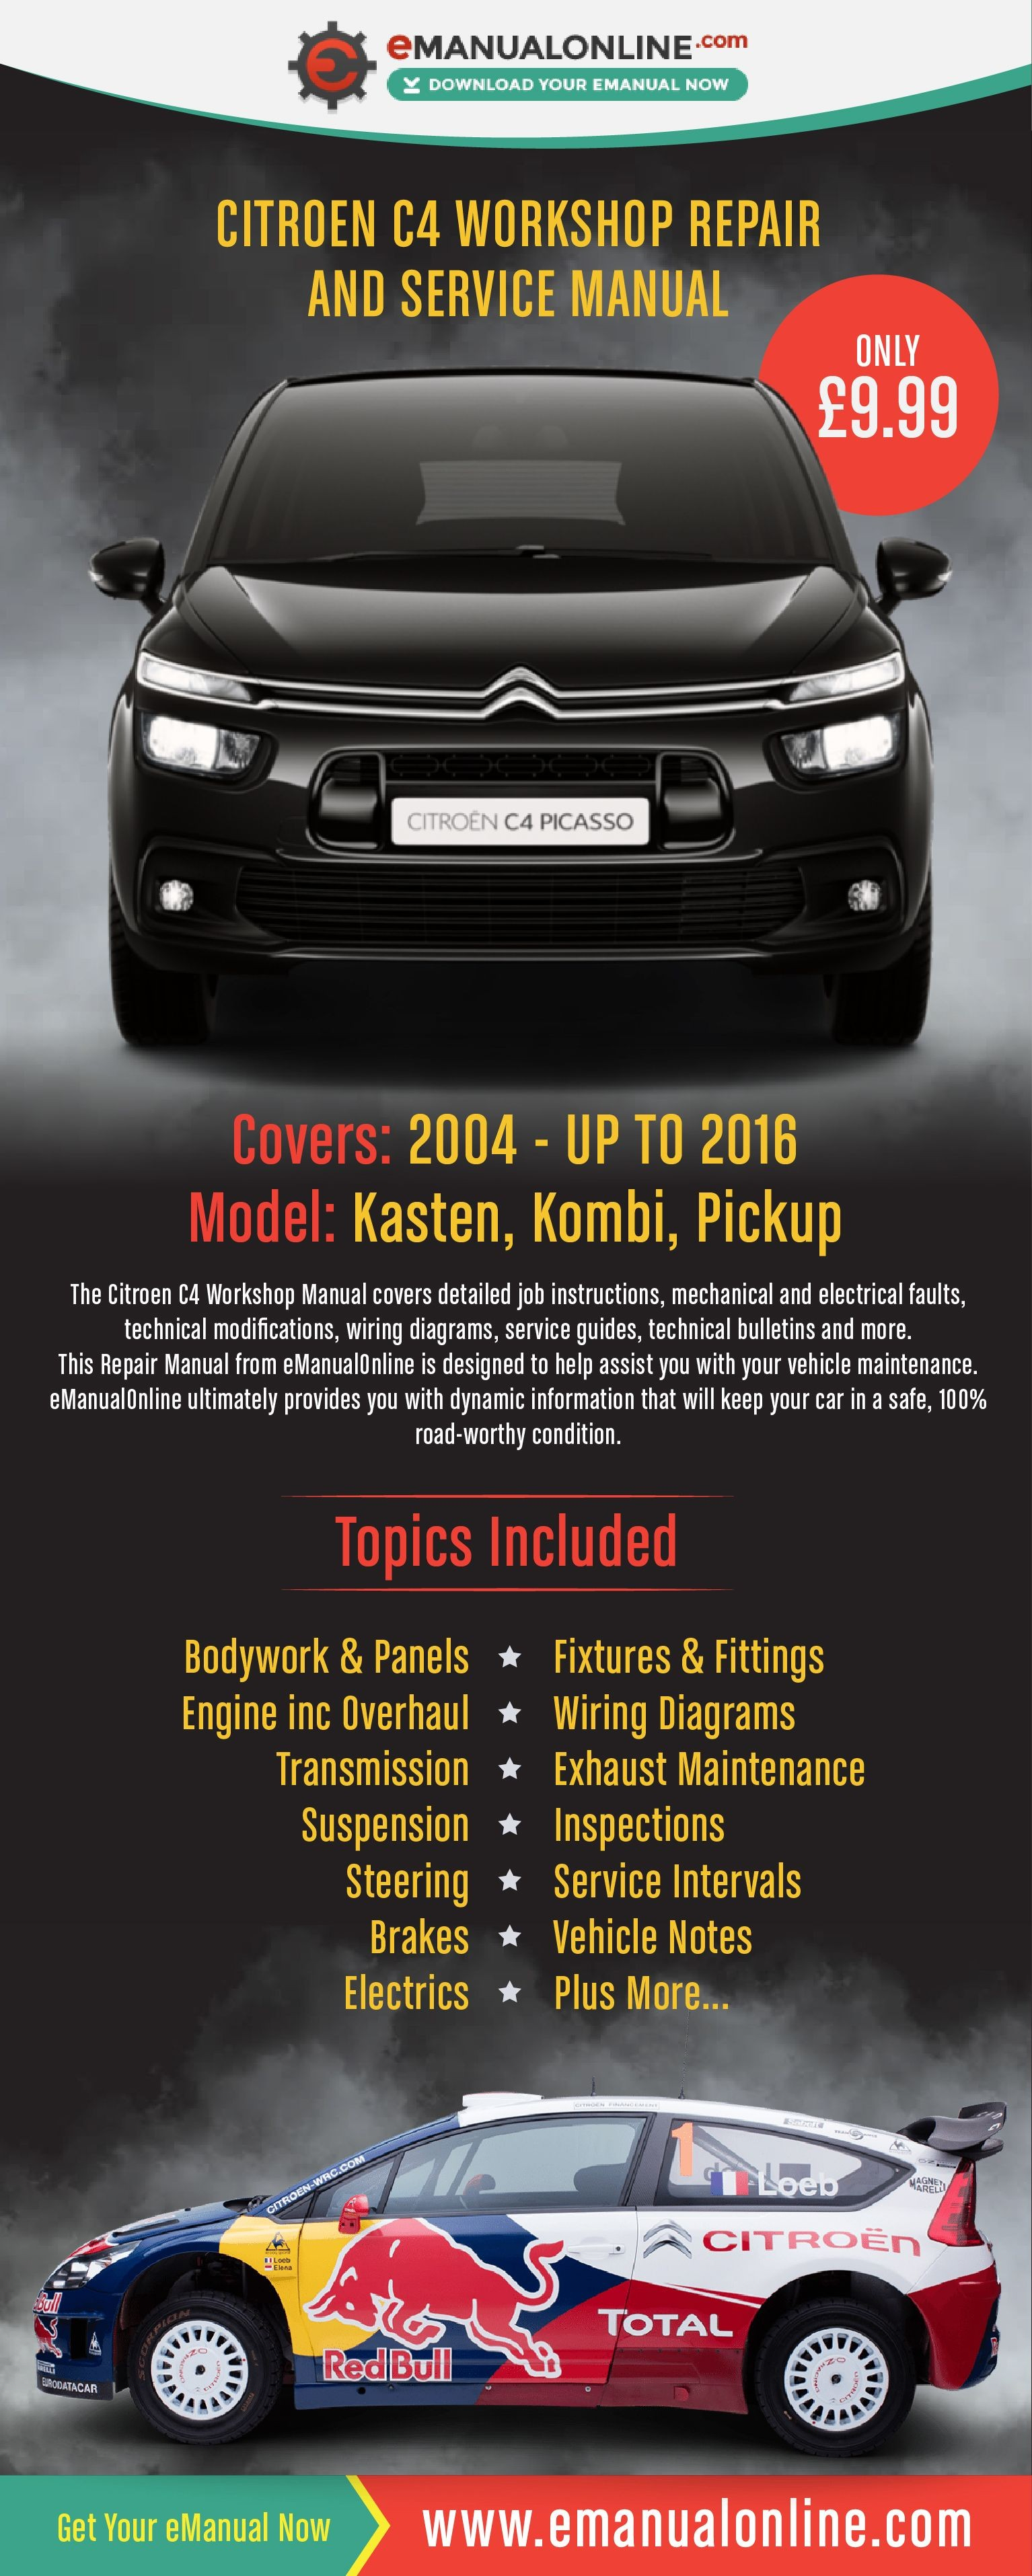 Citroen C4 Engine Diagram Citroen C4 Workshop Repair and Service Manual Of Citroen C4 Engine Diagram